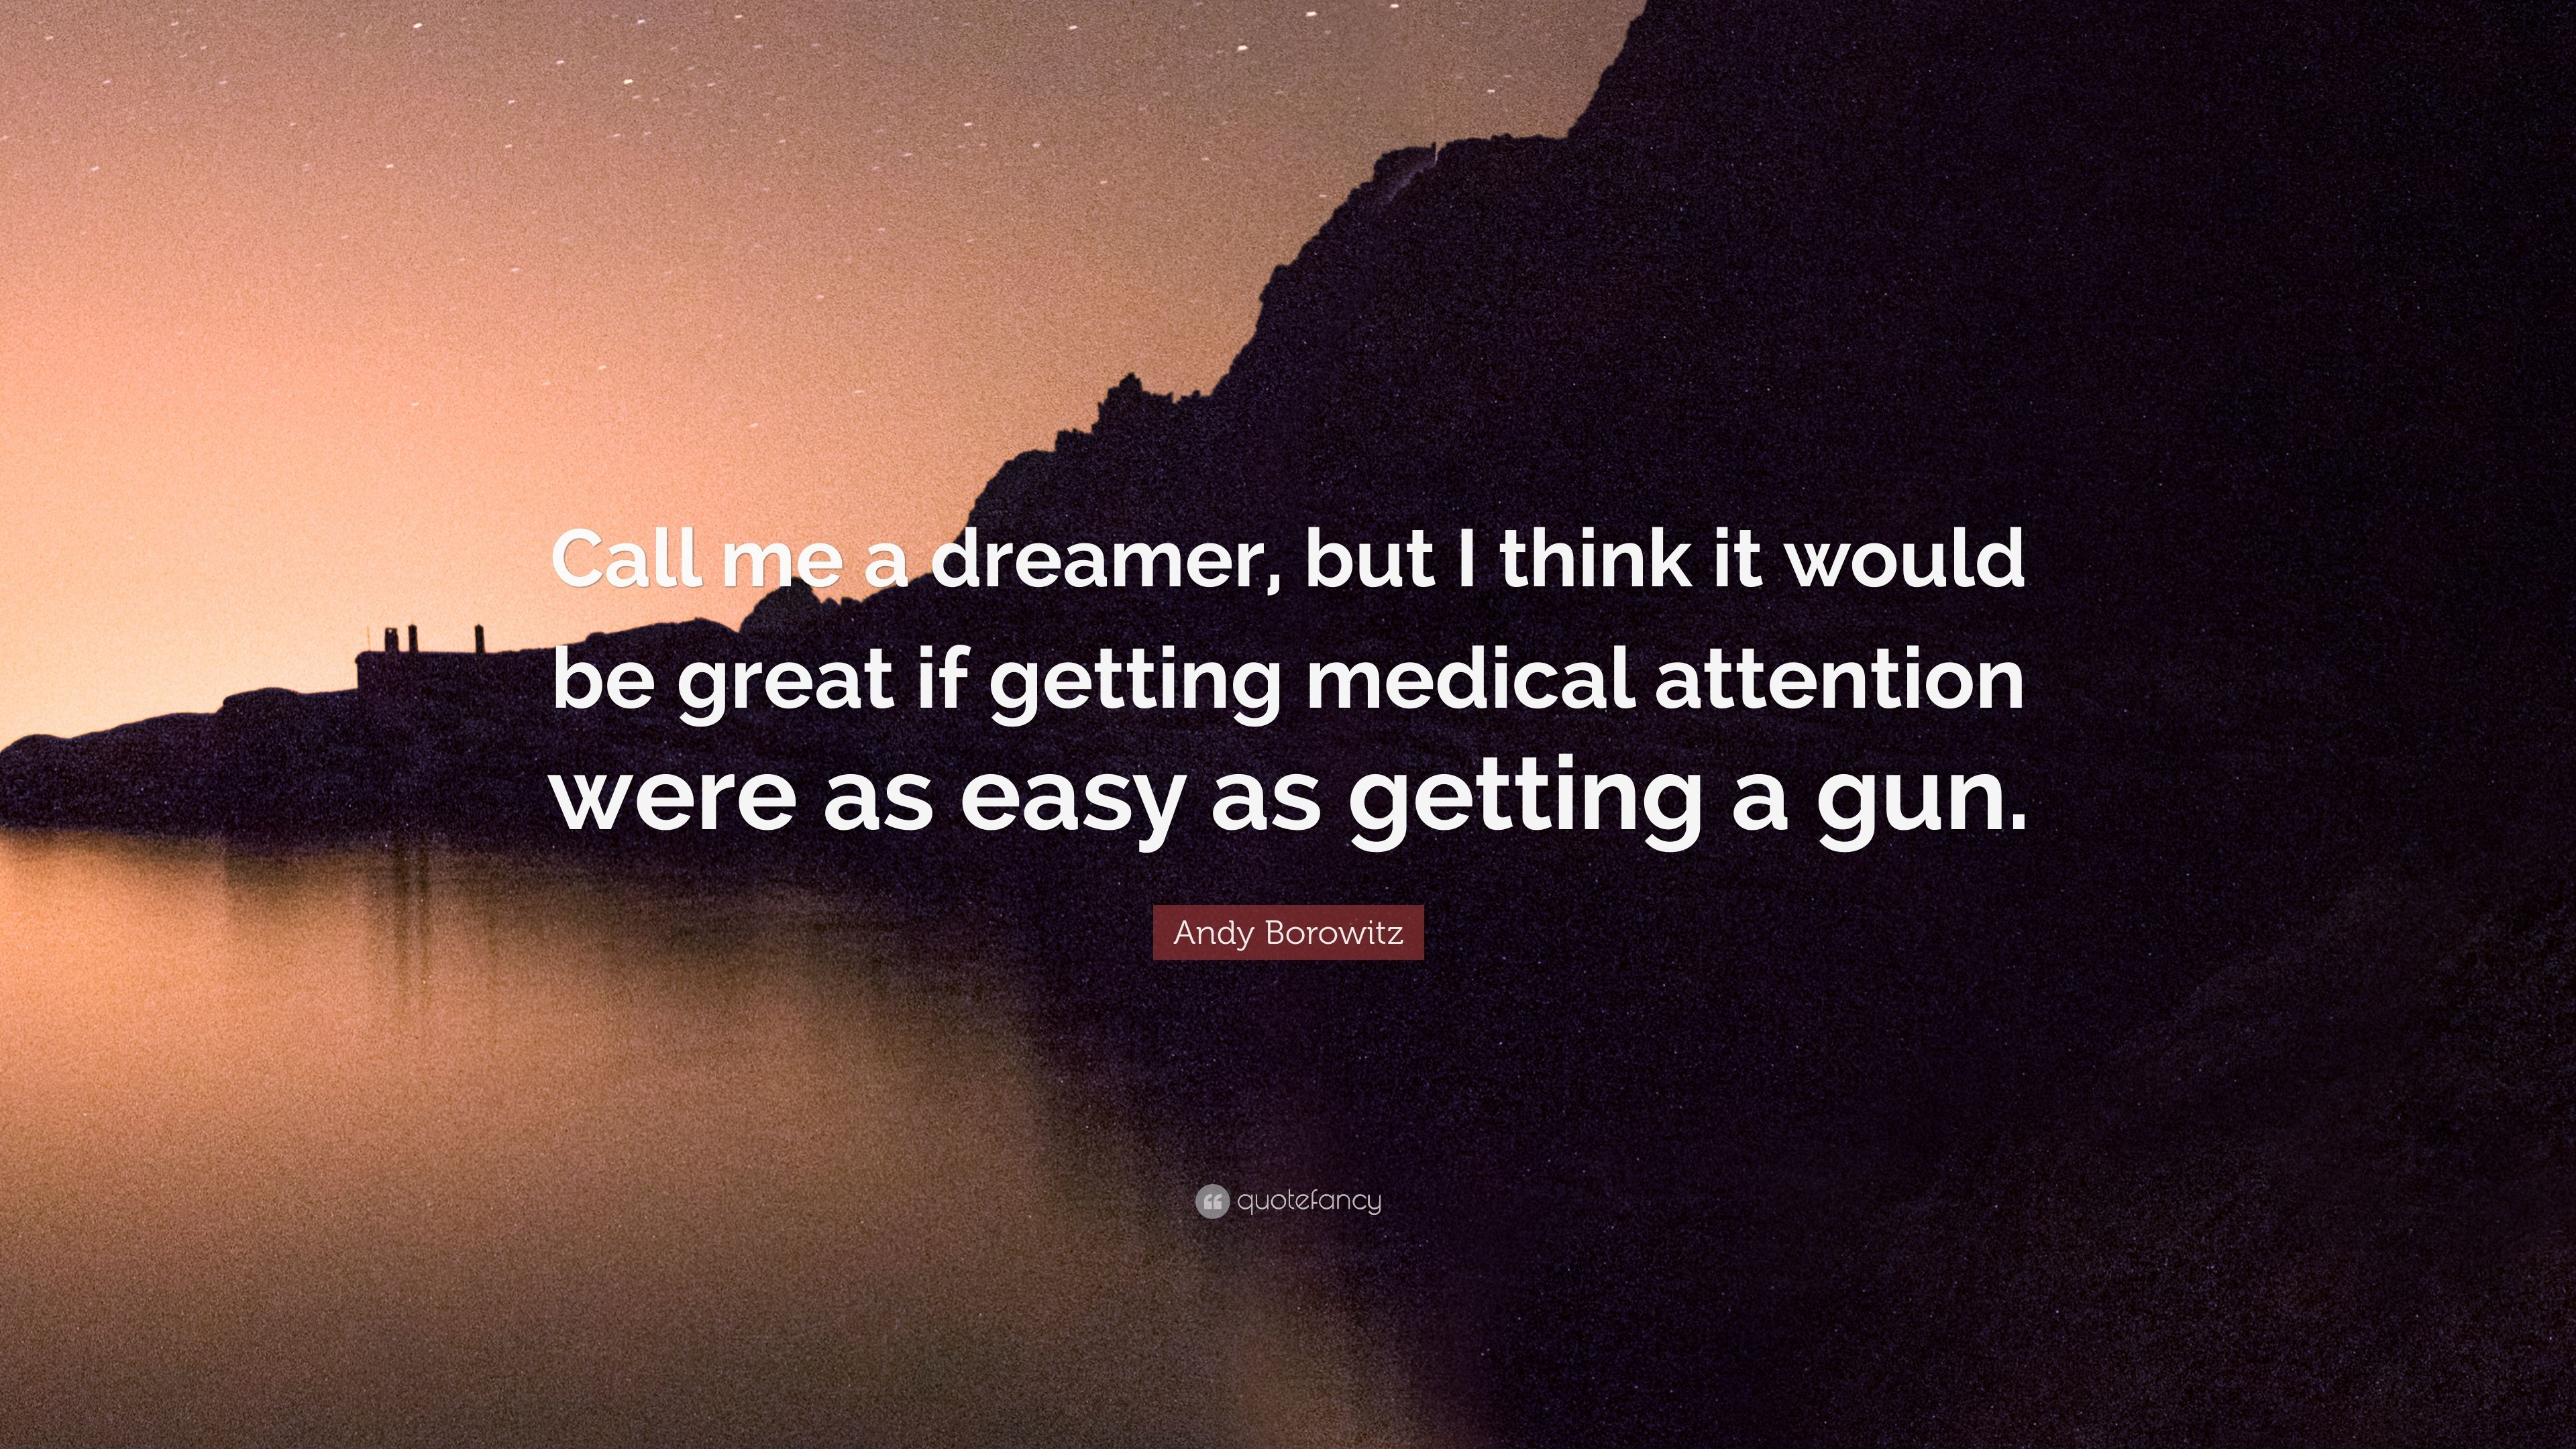 Andy Borowitz Quote u201cCall me a dreamer